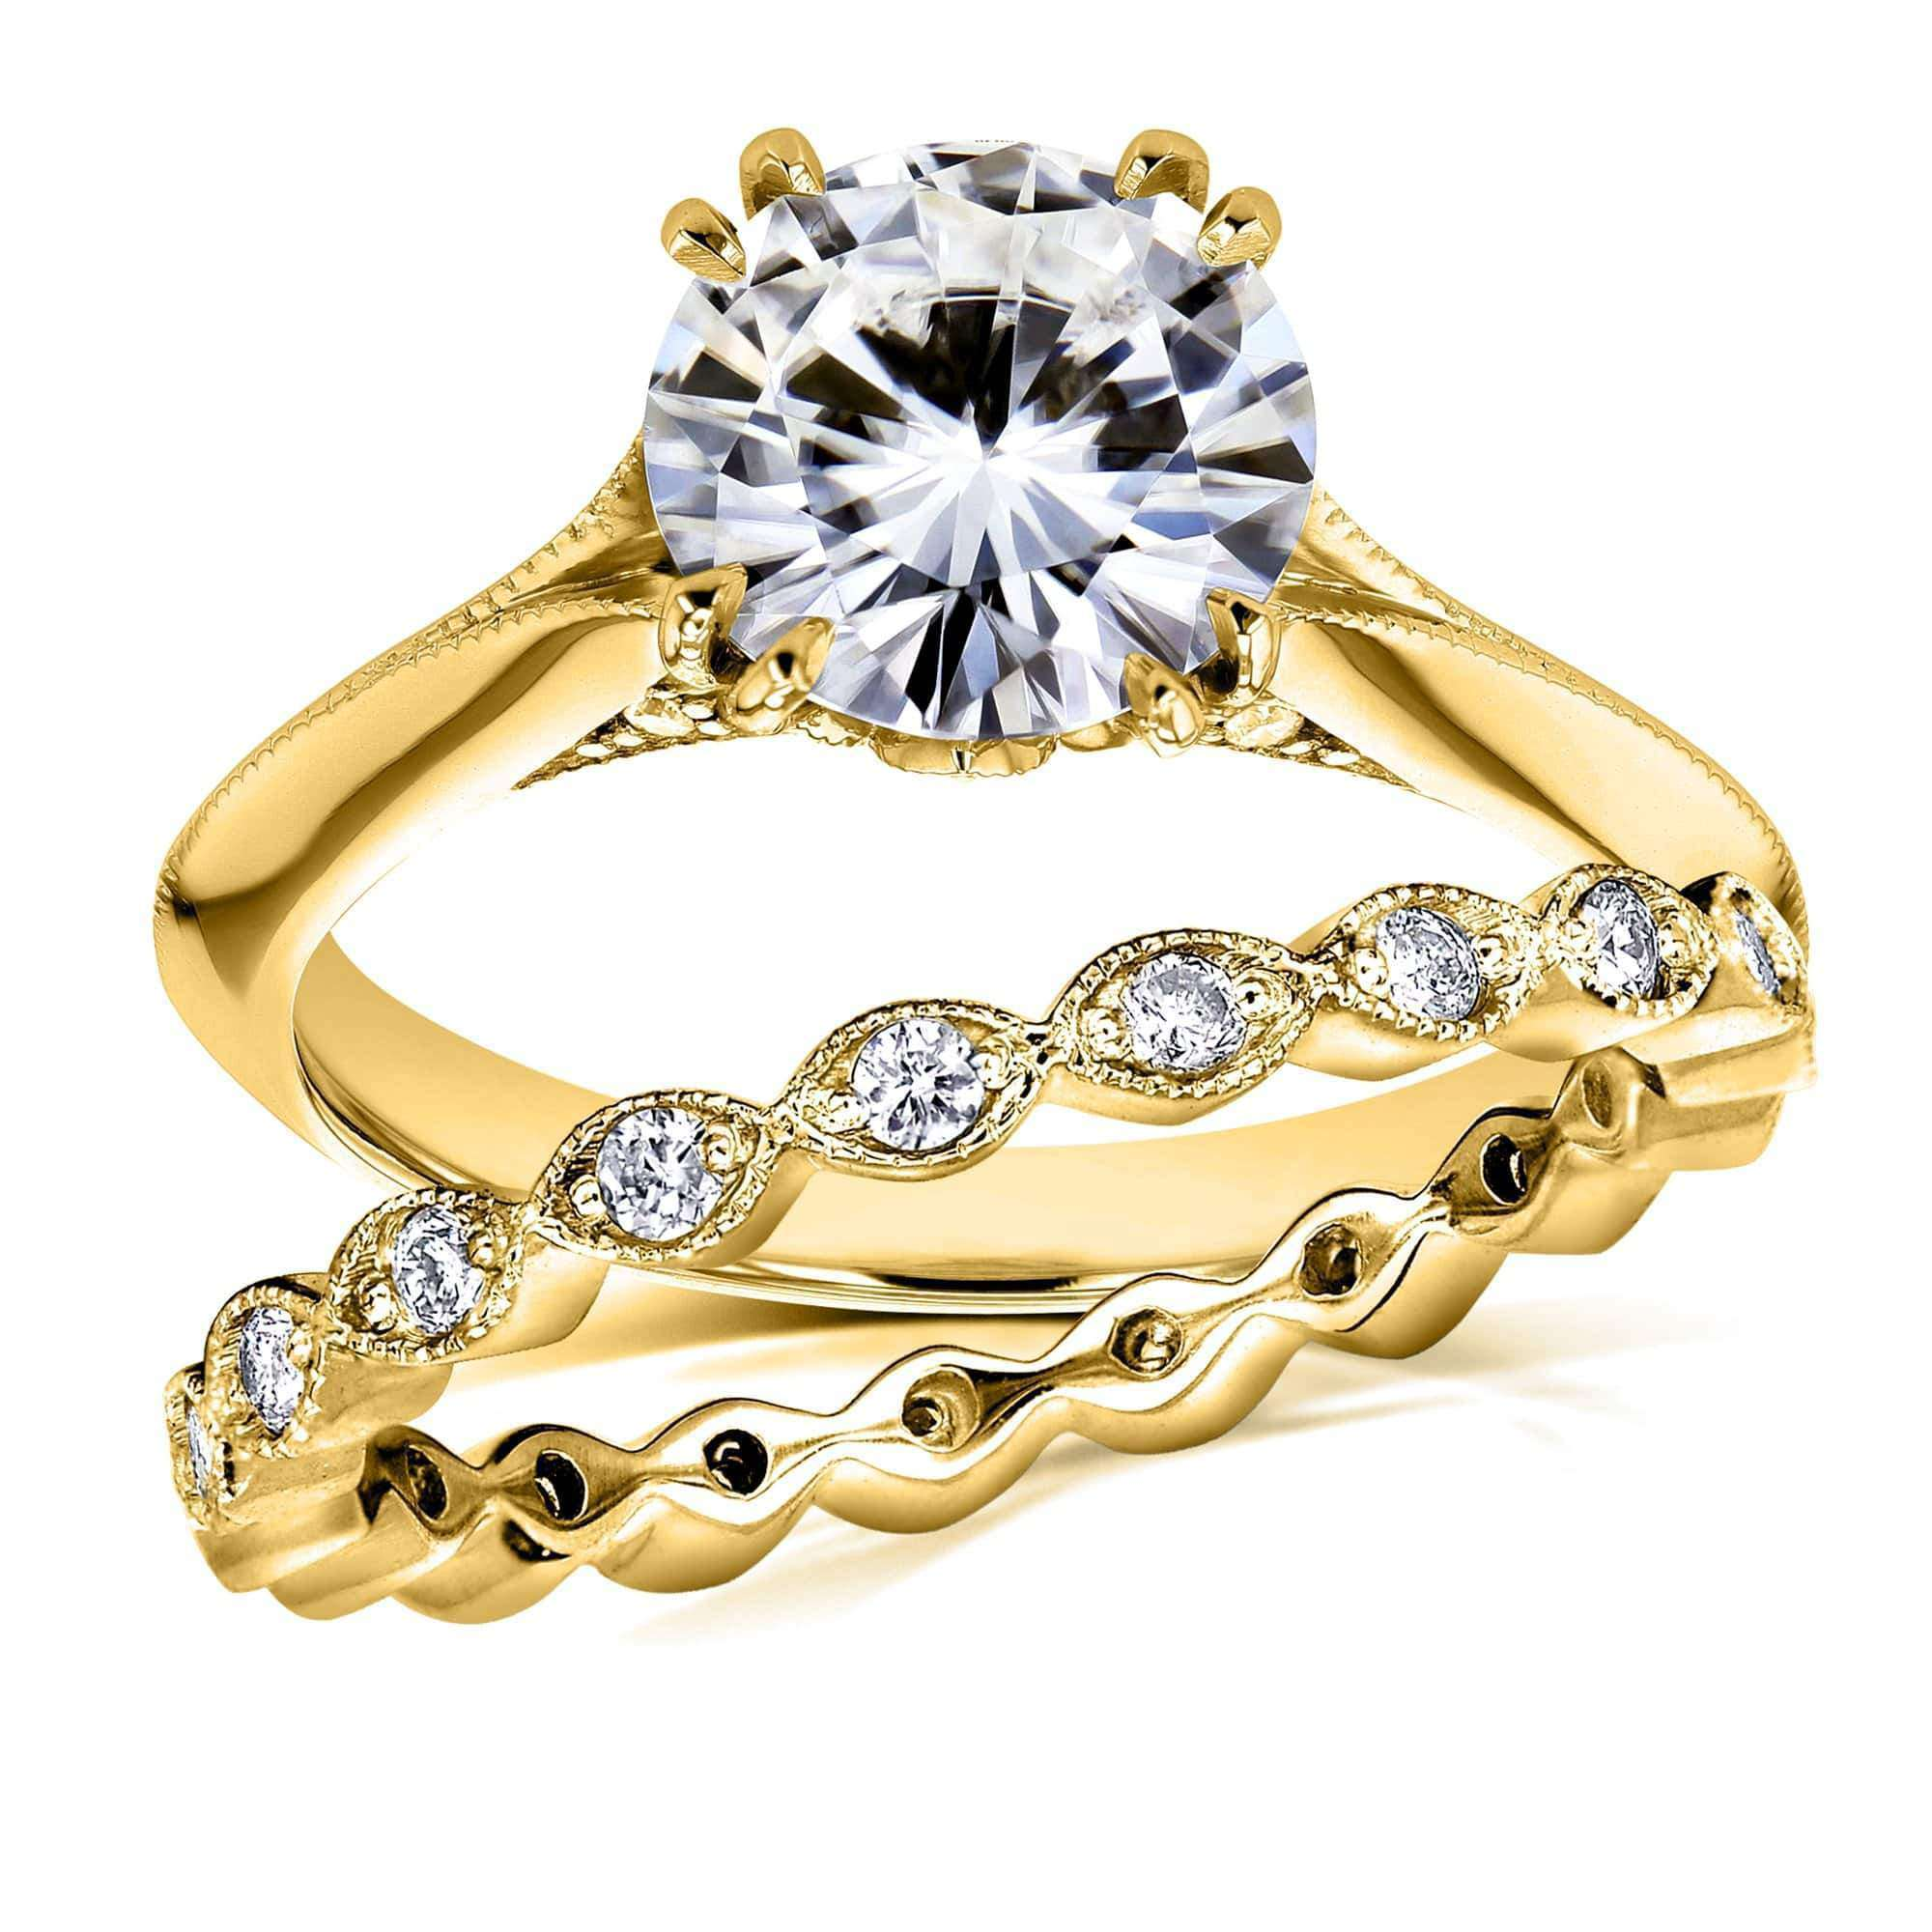 Discounts Moissanite and Diamond Bridal Set Subtle Floral Motif 1 7/8 CTW 14k Yellow Gold (FG/VS GH/I) - 4